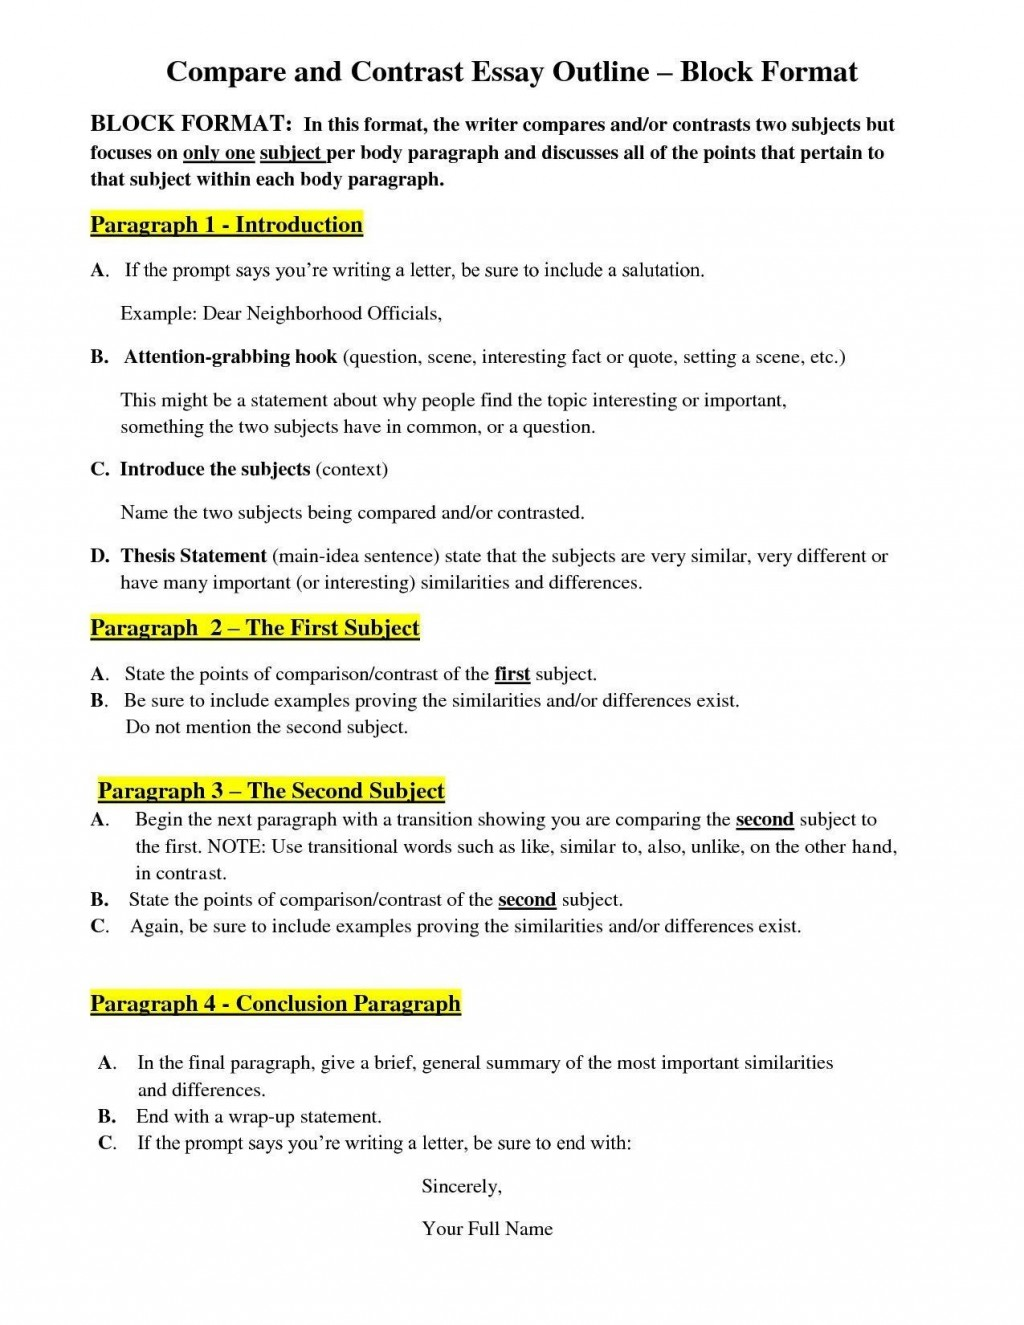 014 Essay Examplempare Andntrastmparison Best Examples Of Scenario In 6th Grade An Goo 3rd Food 5th Middle School Block Format Pdf High 4th Vs Striking Compare And Contrast Example Topics 9th Large